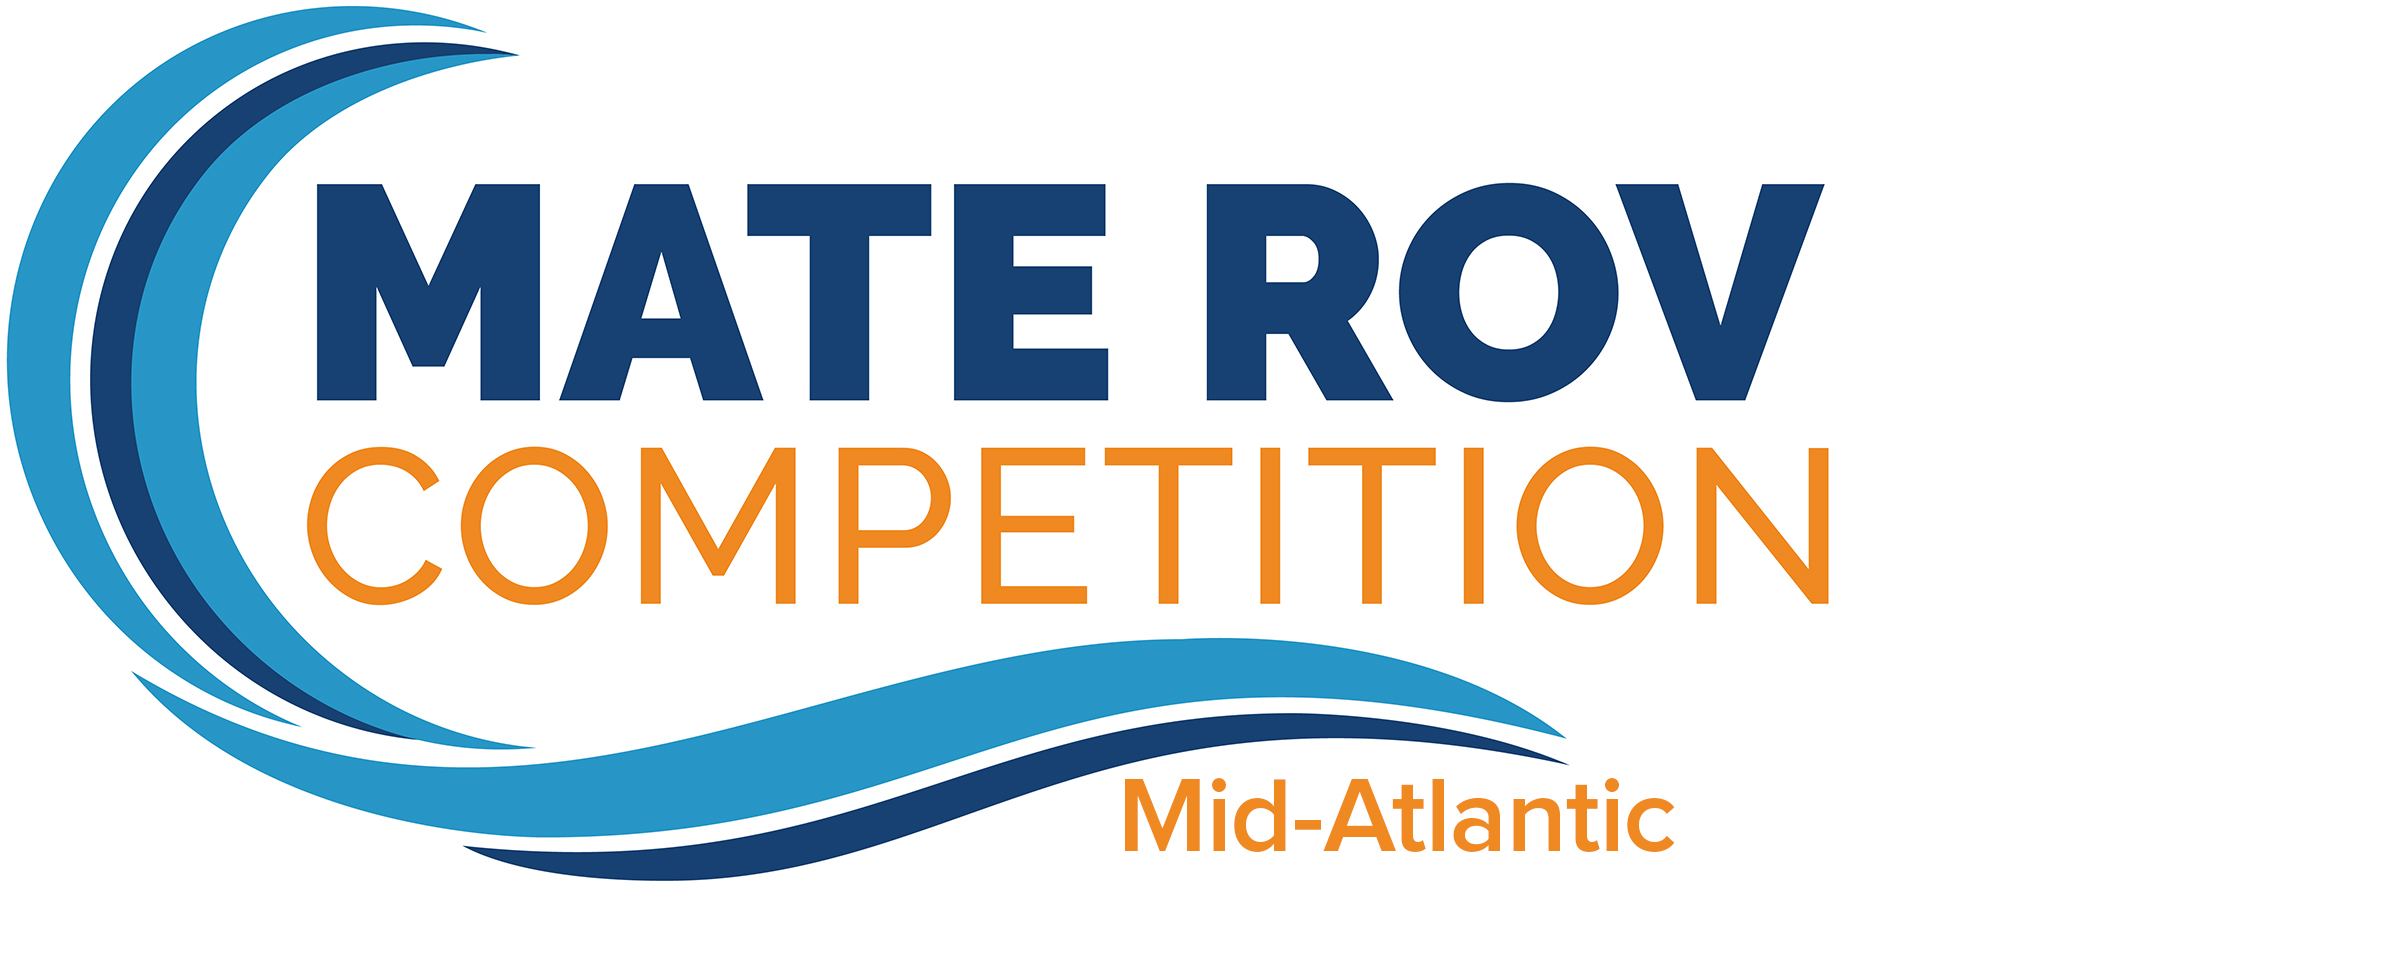 MATE ROV Competition, Mid-Atlantic logo